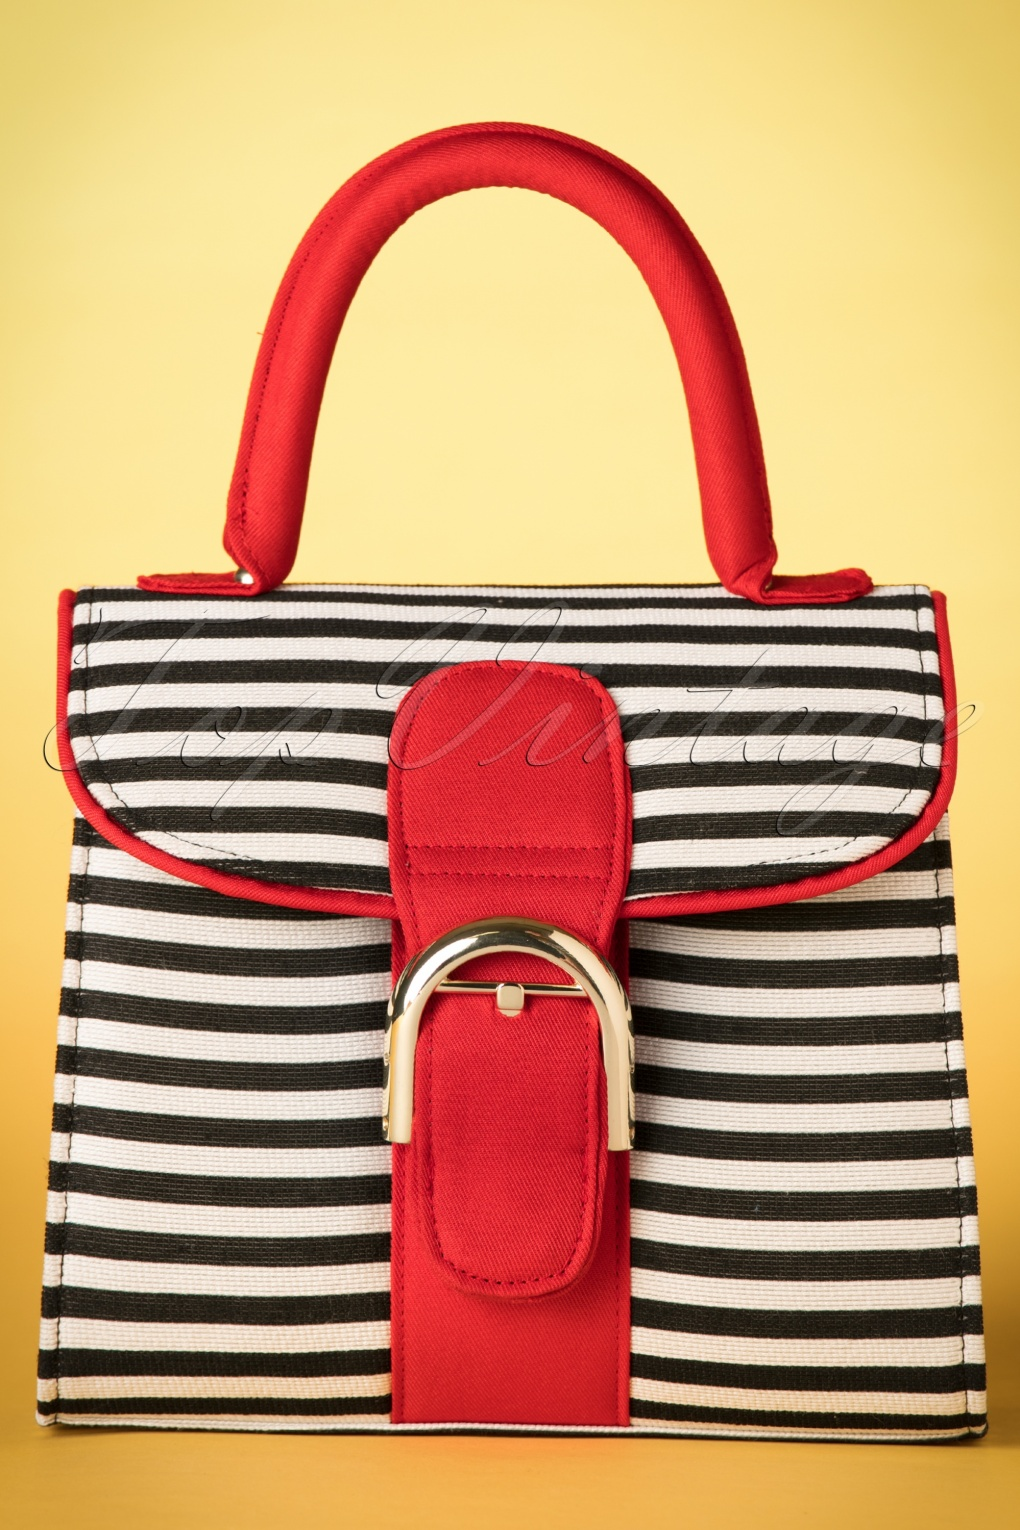 Retro Handbags, Purses, Wallets, Bags 60s Riva Stripes Bag in Black and White £42.42 AT vintagedancer.com